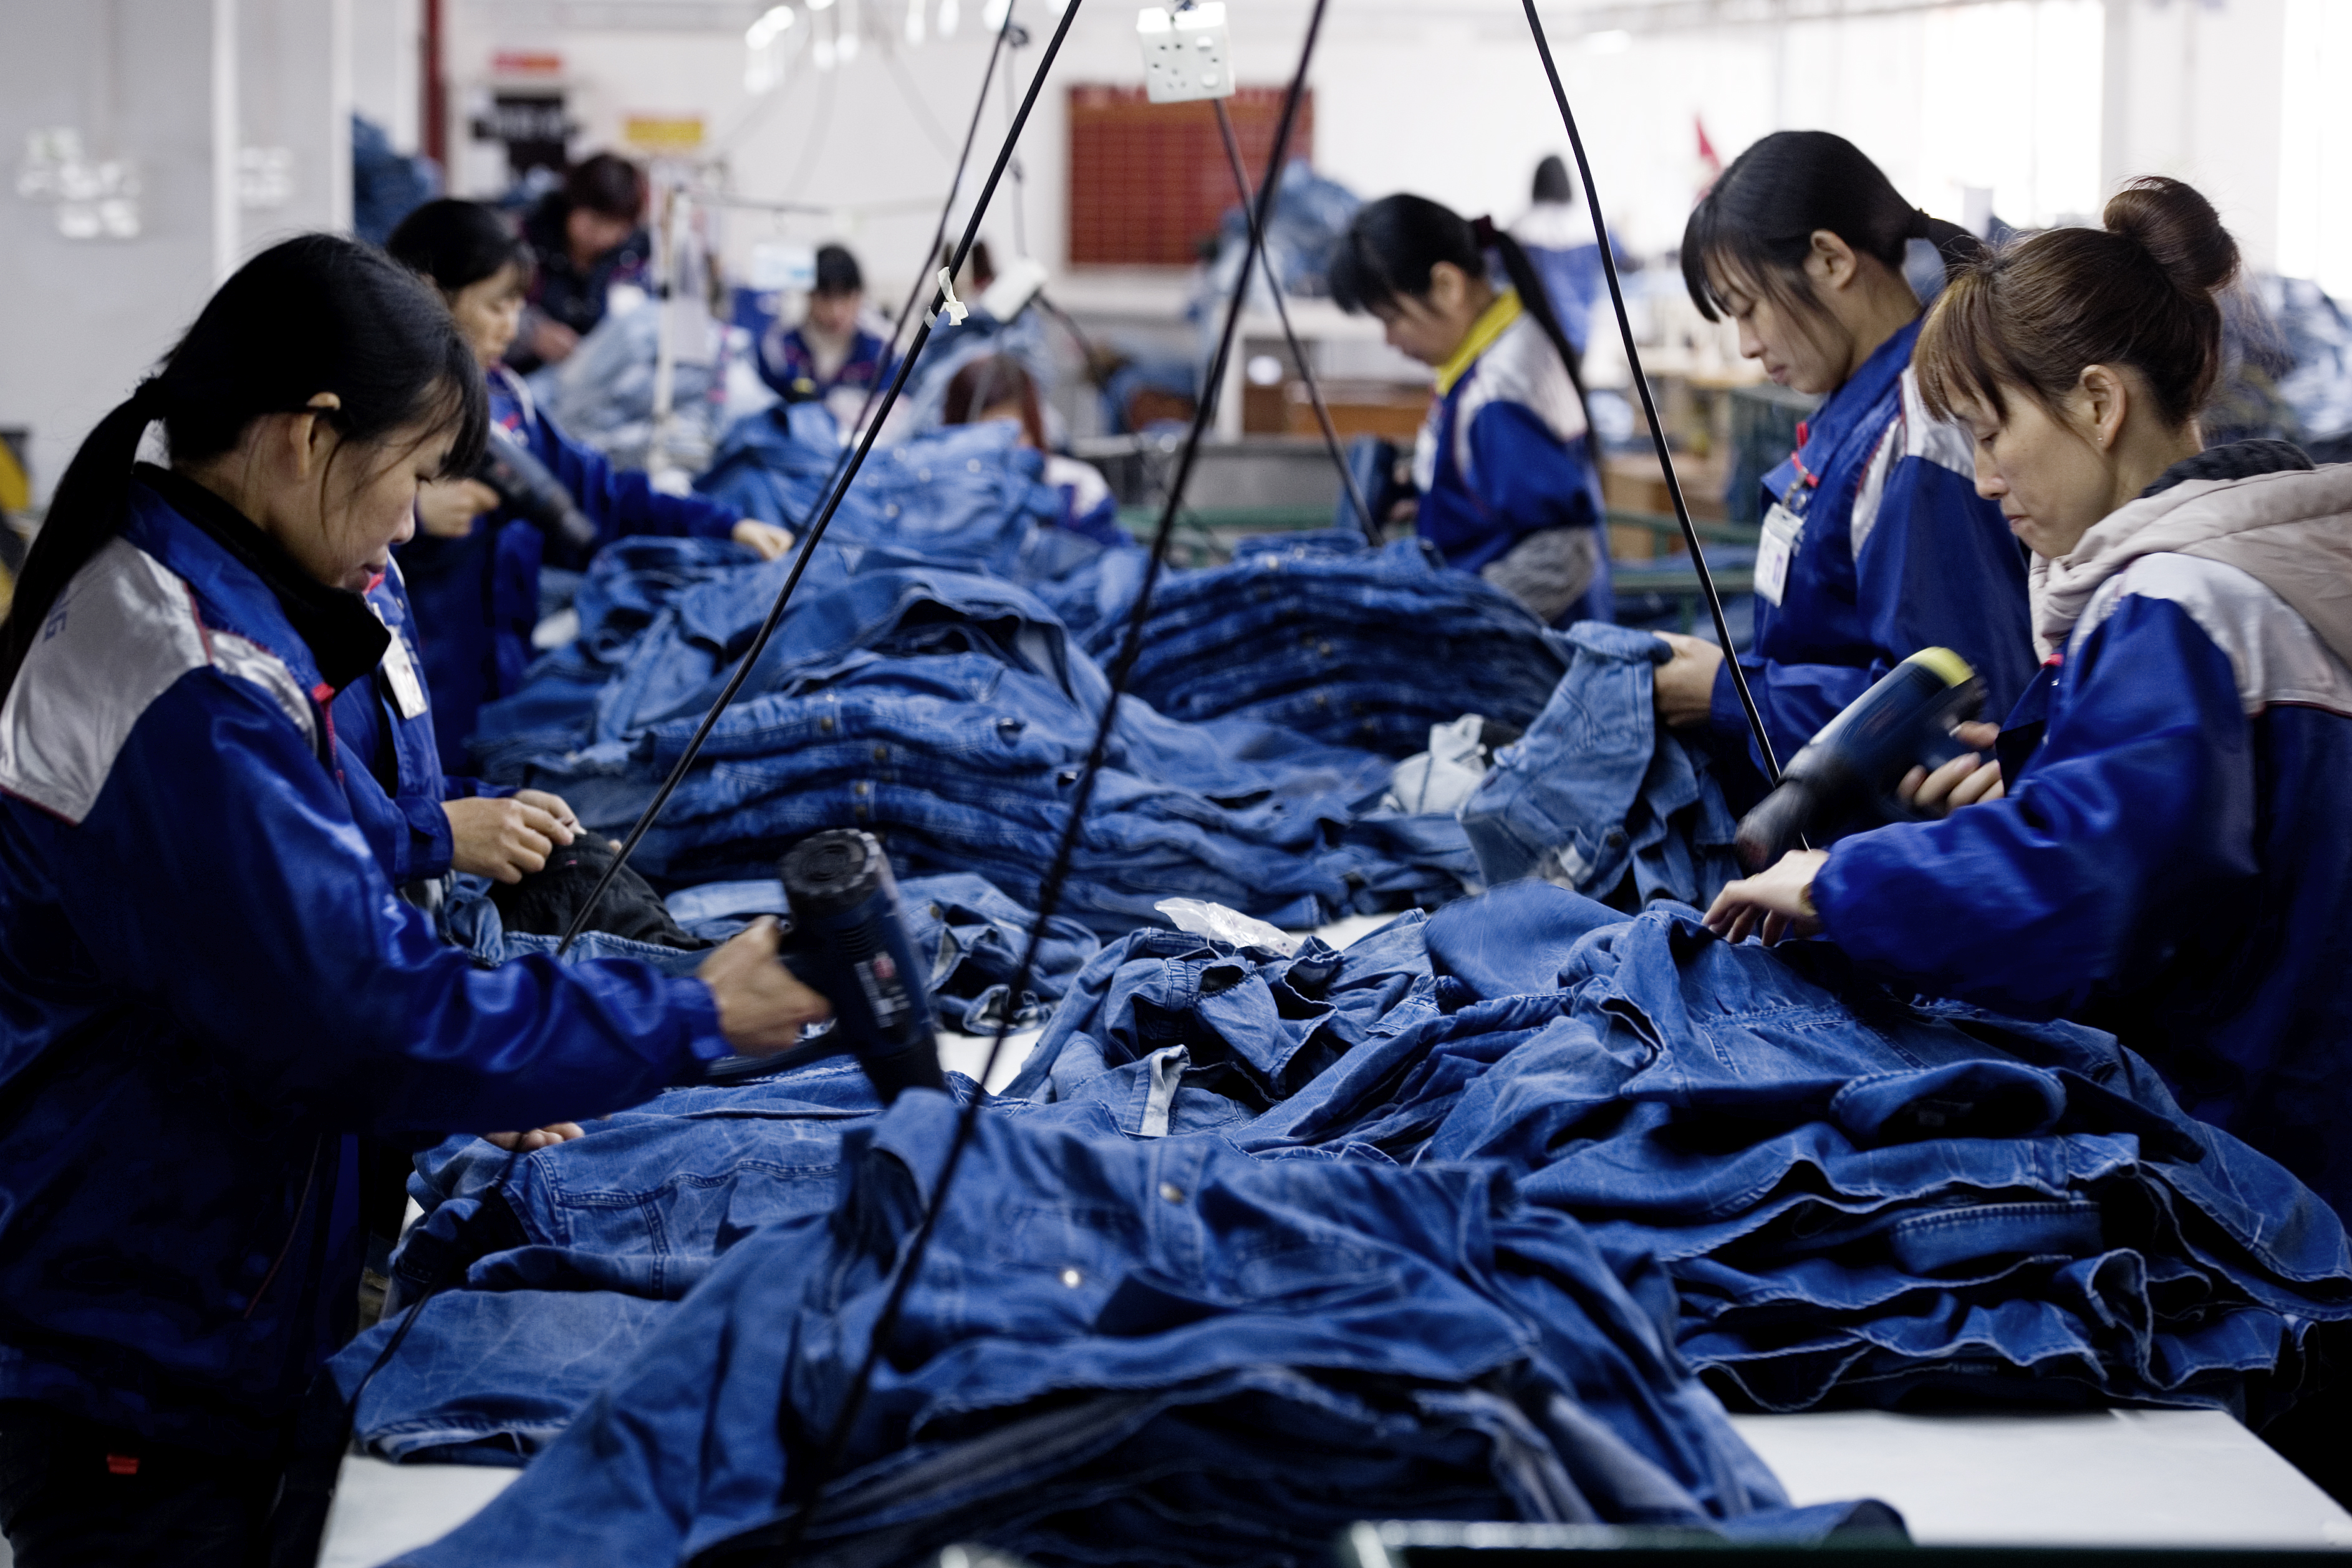 Denim Jean Production In China